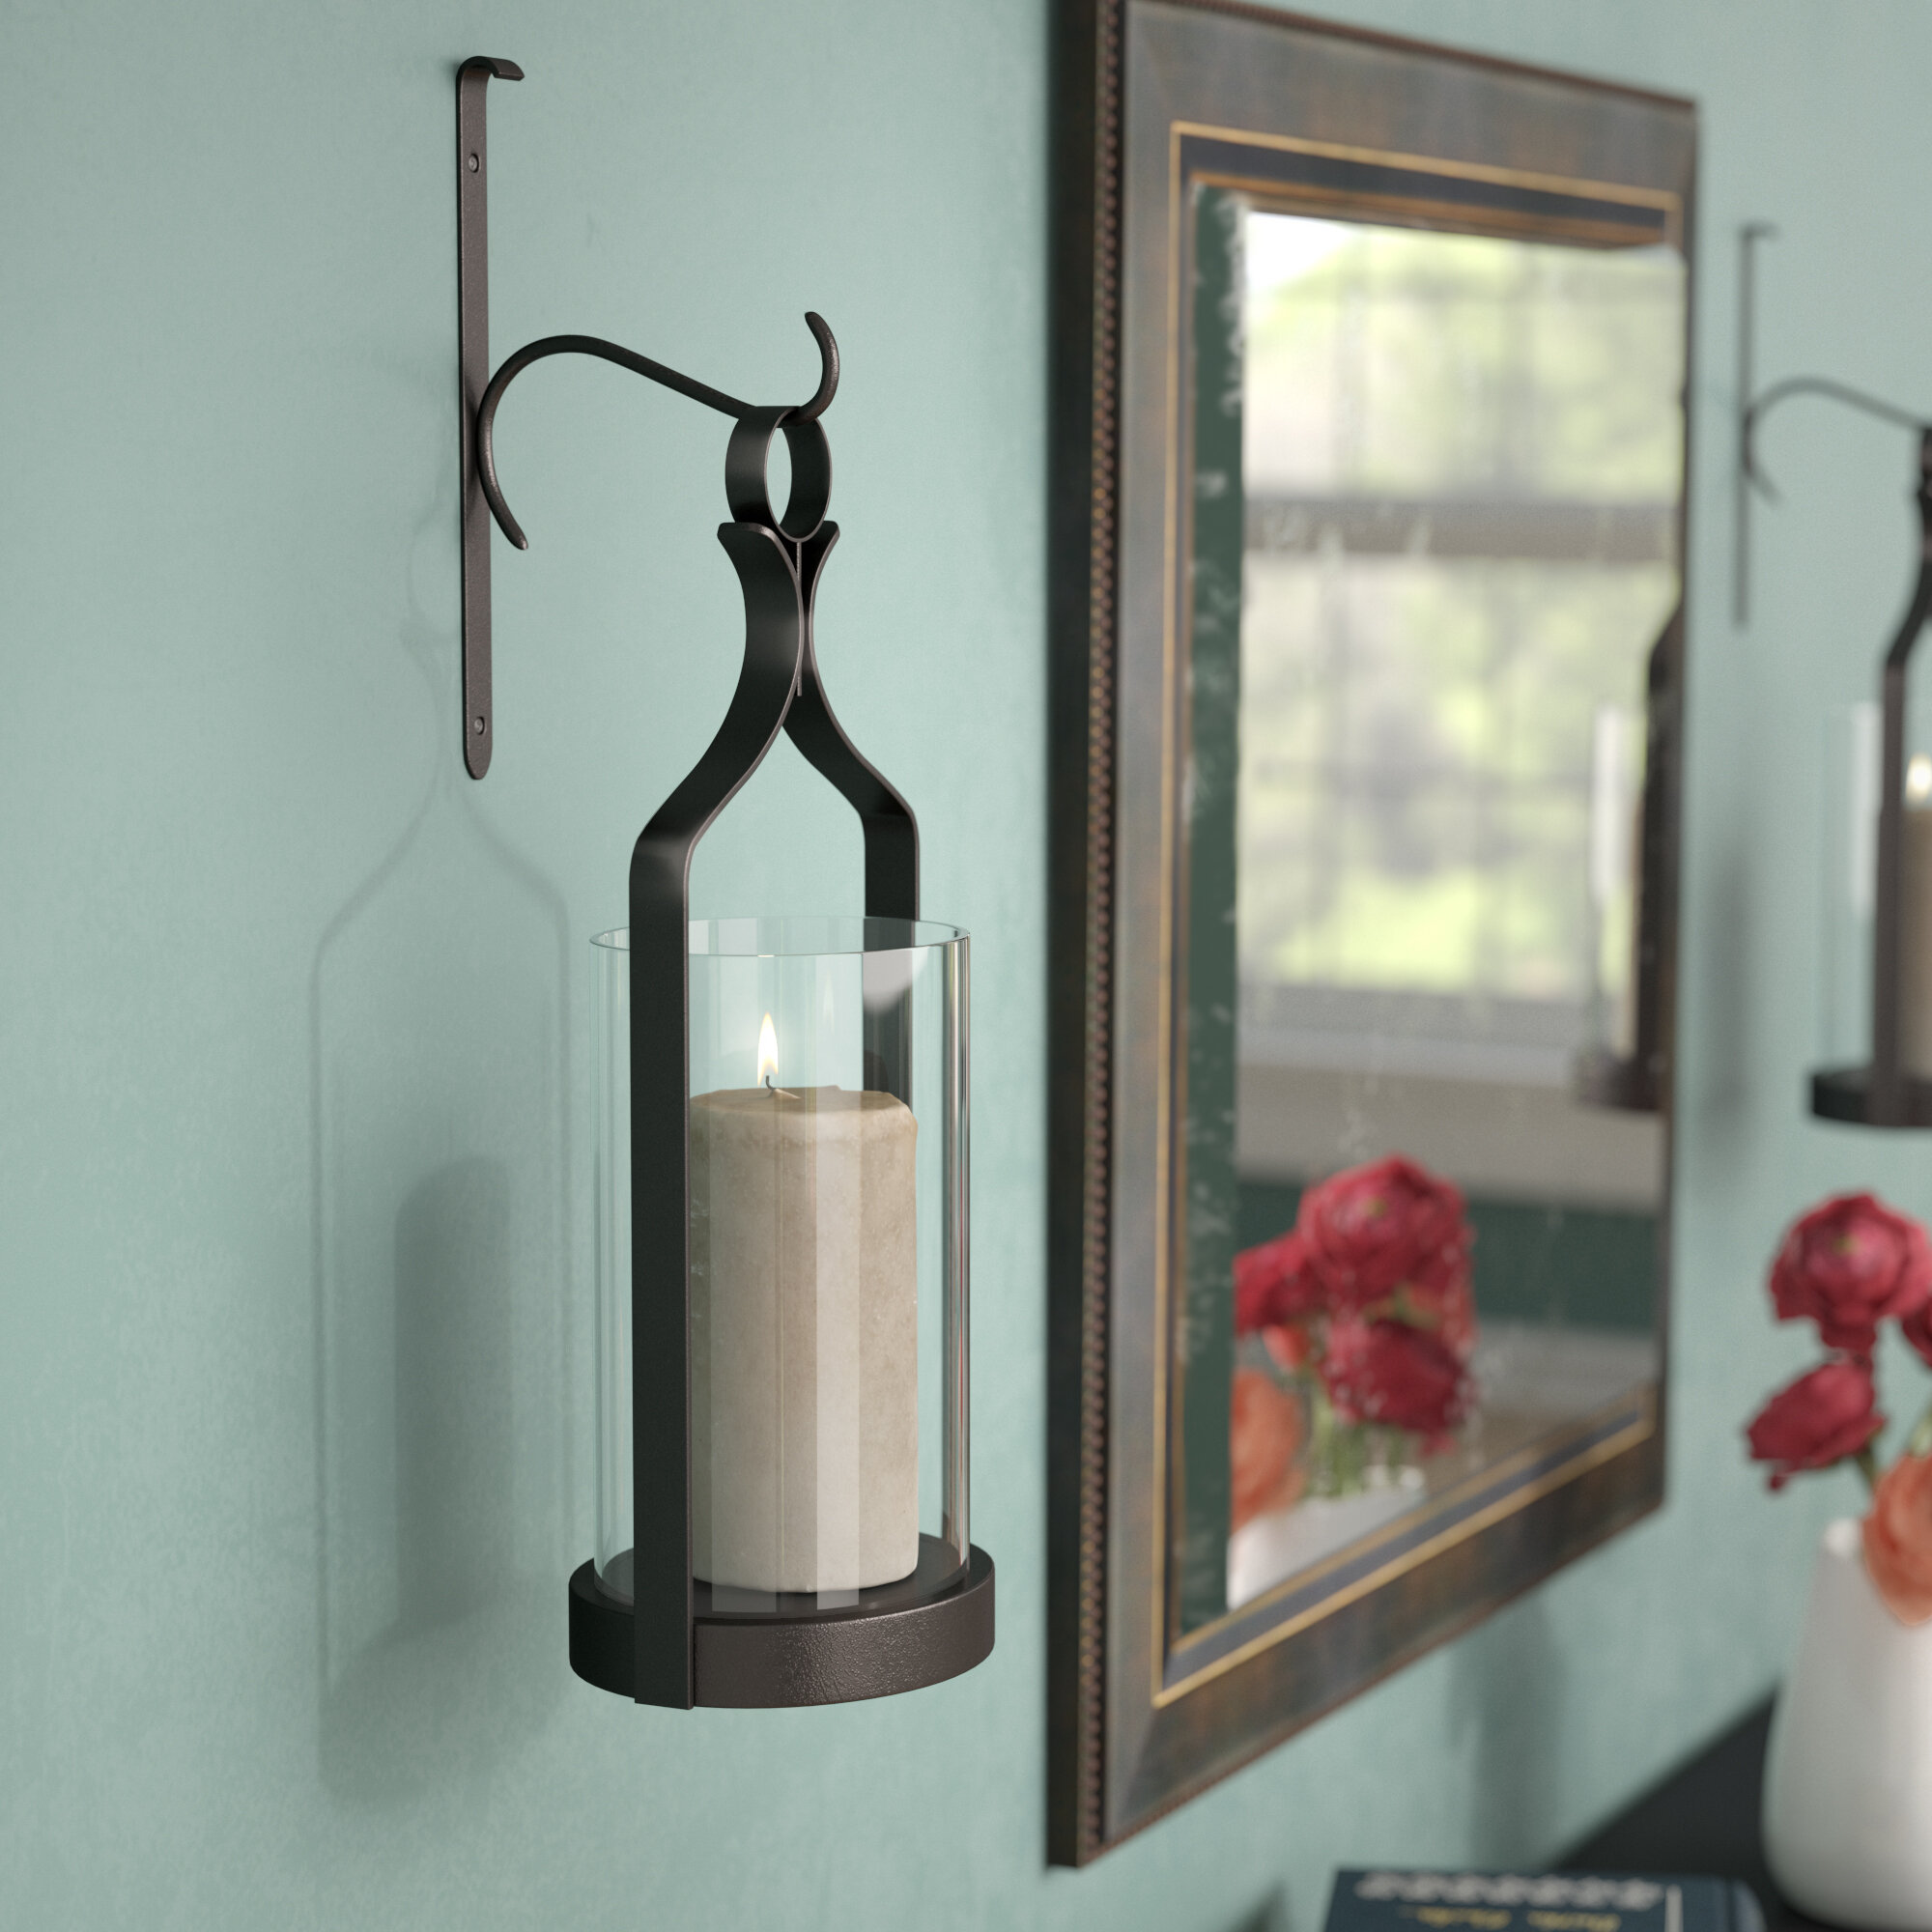 Great Three Posts Glass Wall Sconce U0026 Reviews | Wayfair